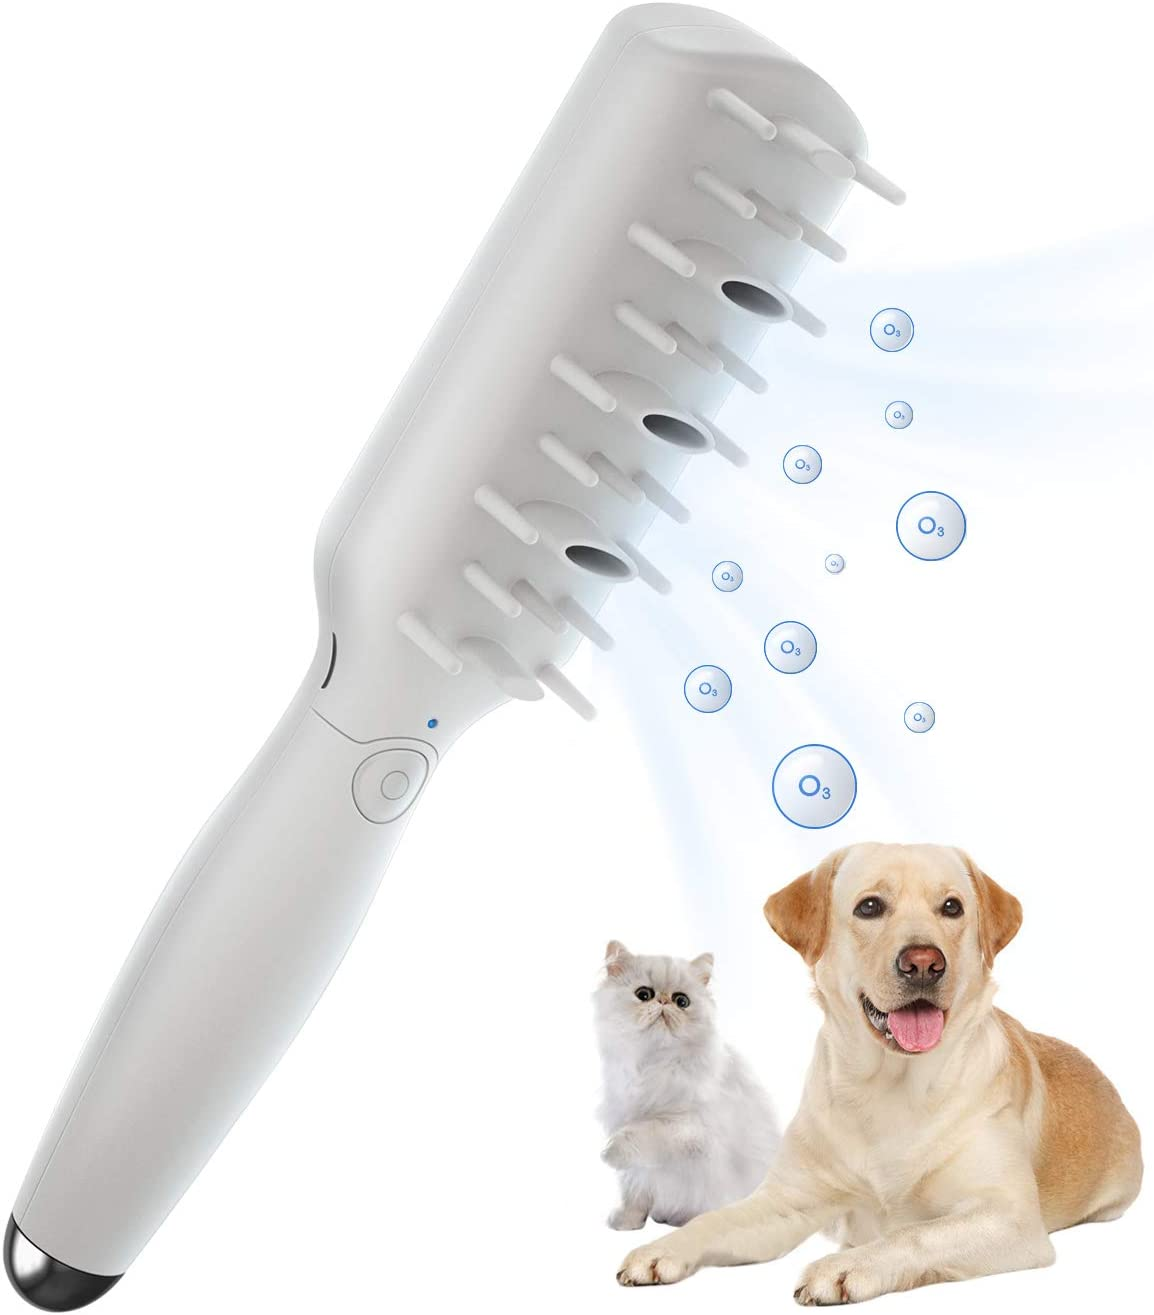 Dog Raleigh Mall Cat Pet Comb for Gifts Removing G Tangles Matted Fur Knots